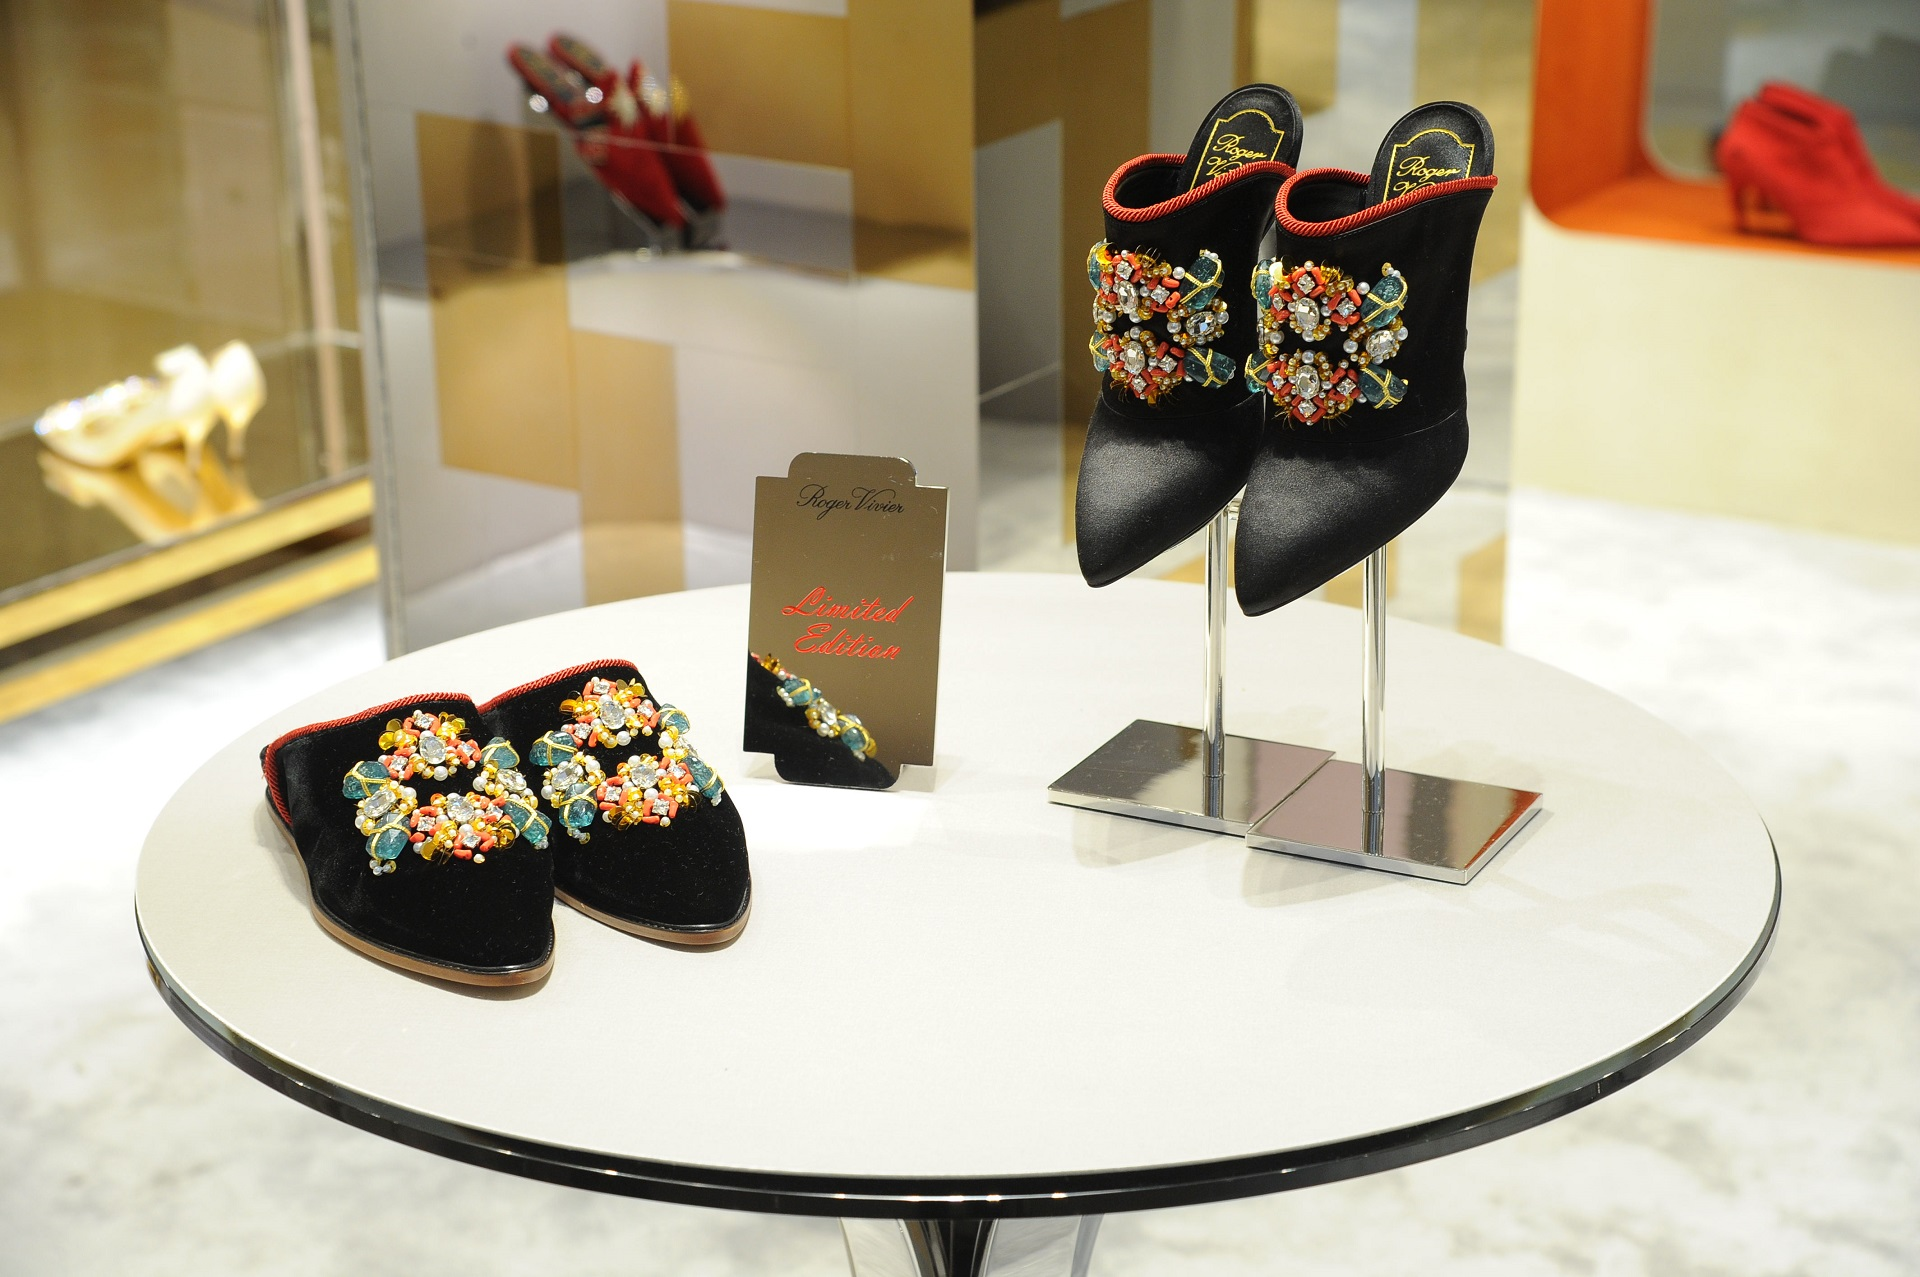 Roger Vivier is bringing a slice of the brand's Parisian spirit, eclecticism and fantasy to Pacific Place in the form of an exclusive pop-up store